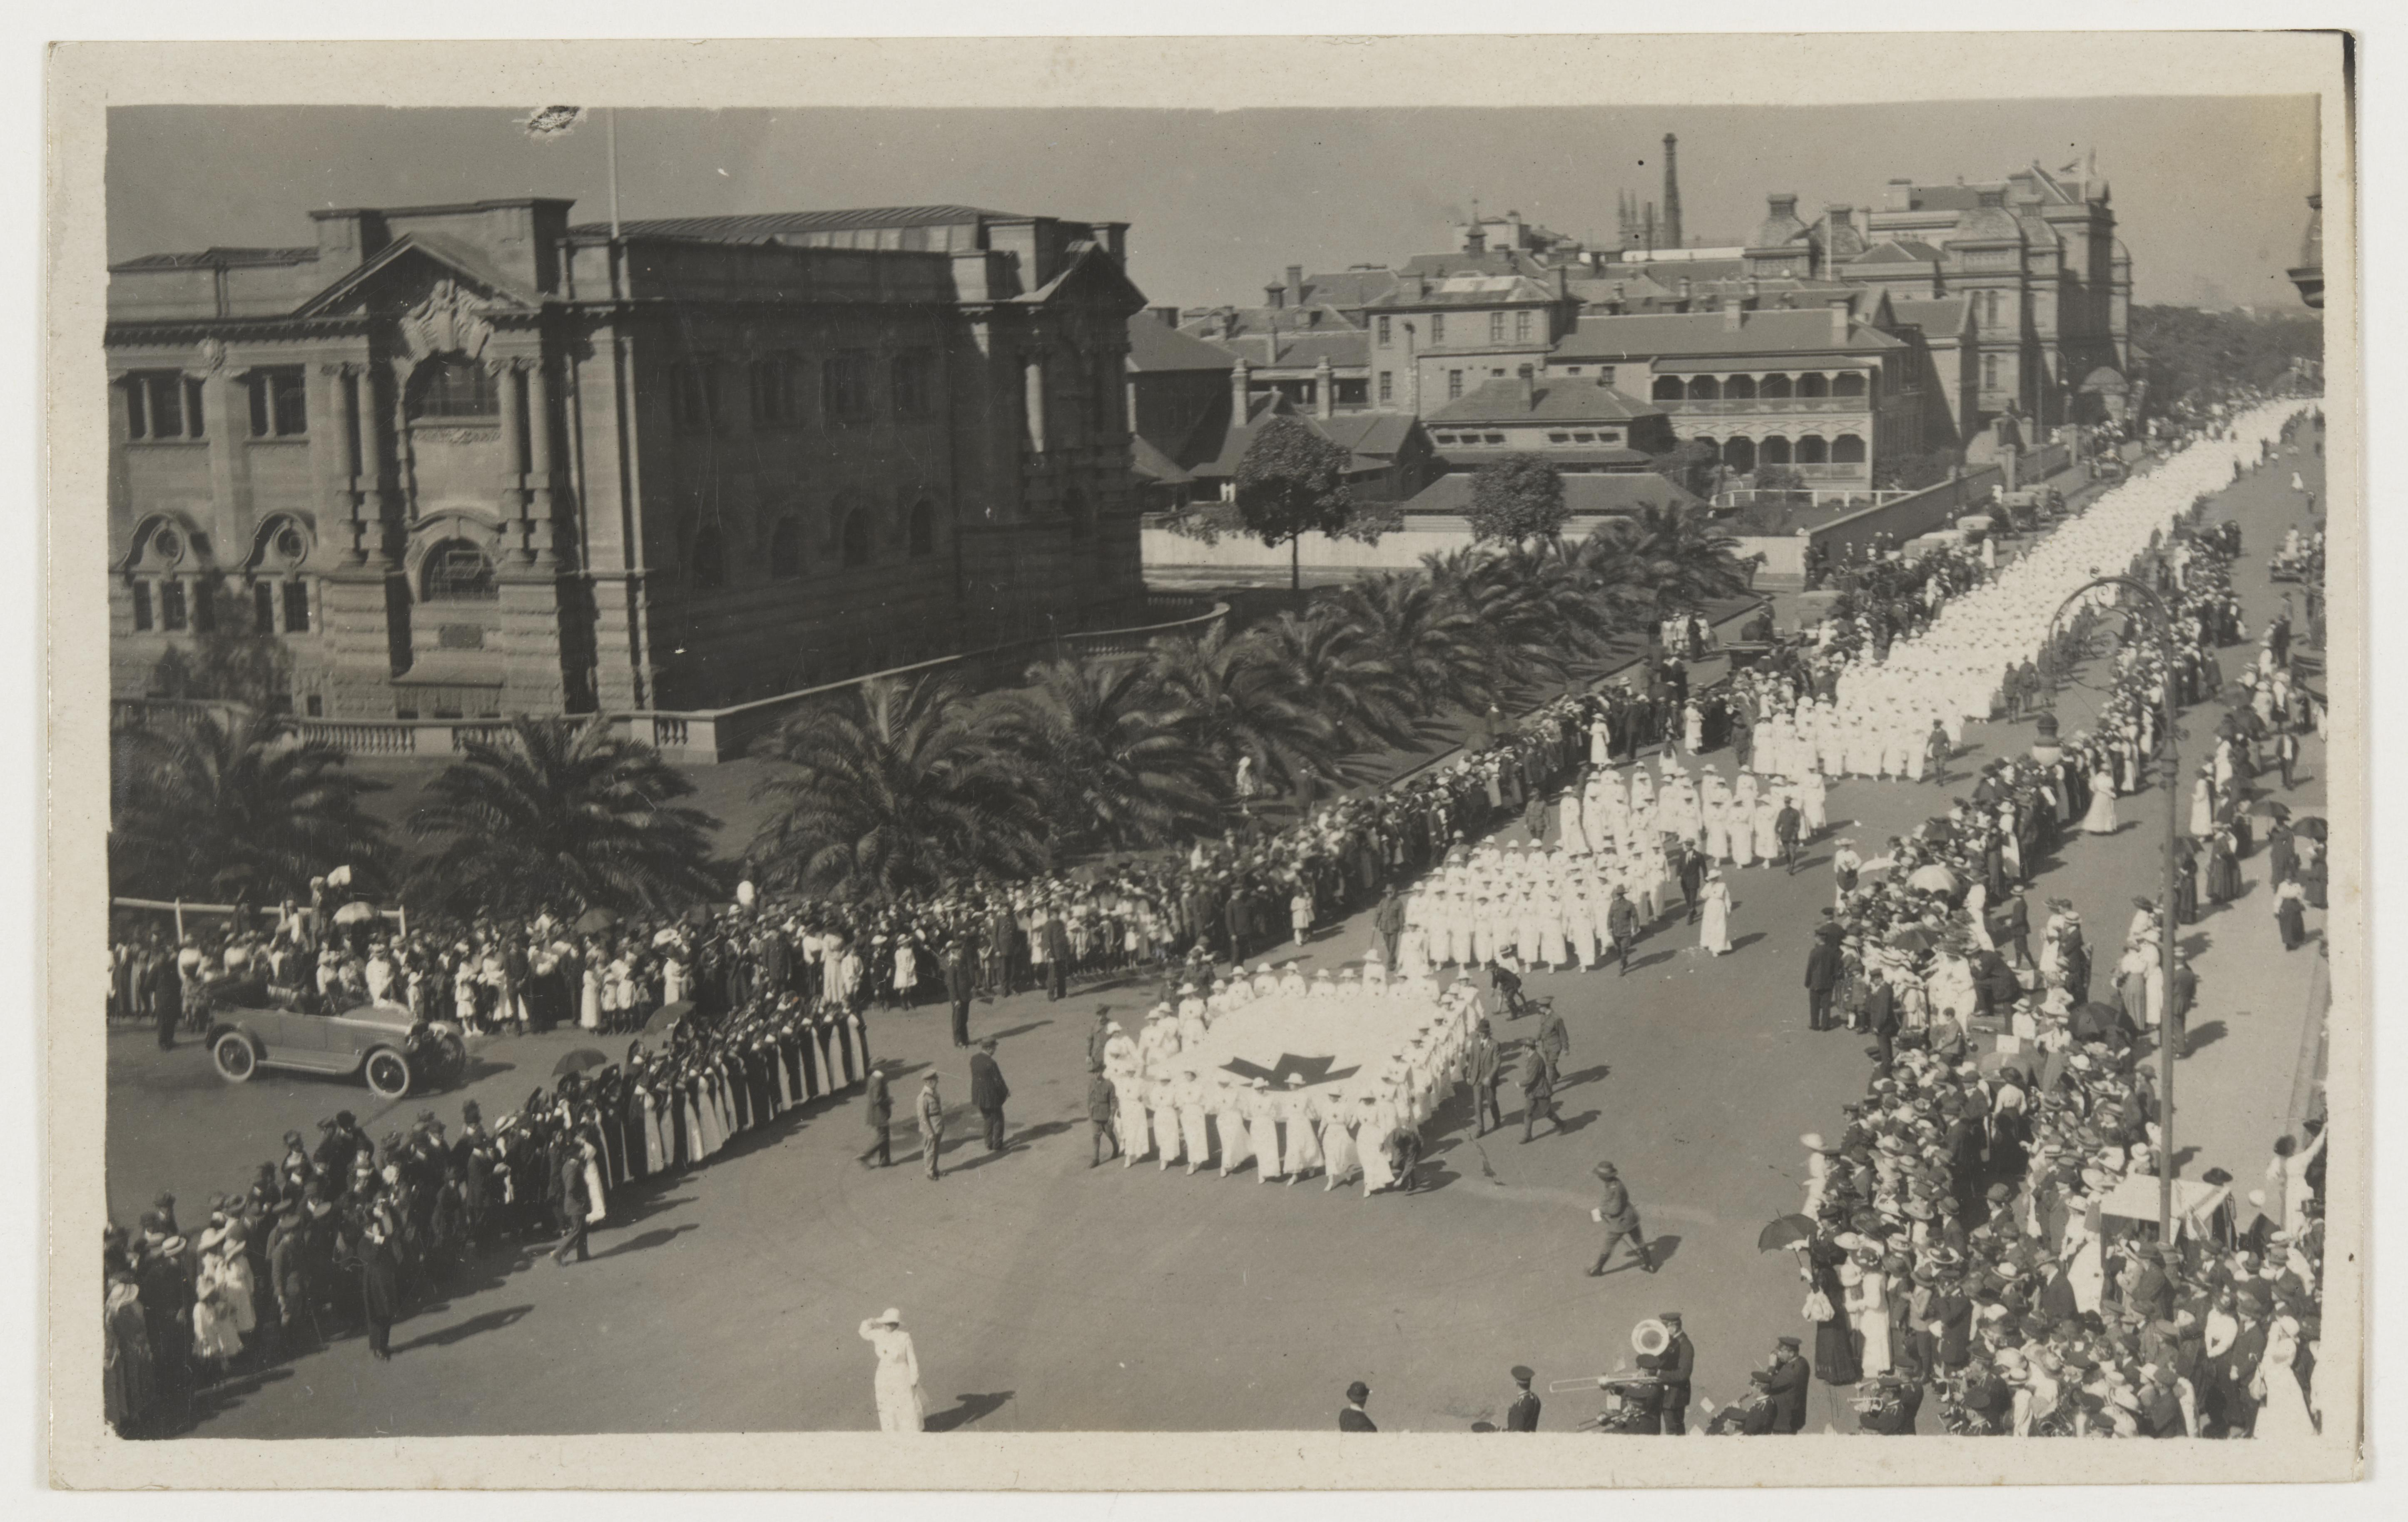 V.A.D. procession Red Cross Day 28th April 1918 / Photo taken by Jas Spence, Turramurra from top of Library Building